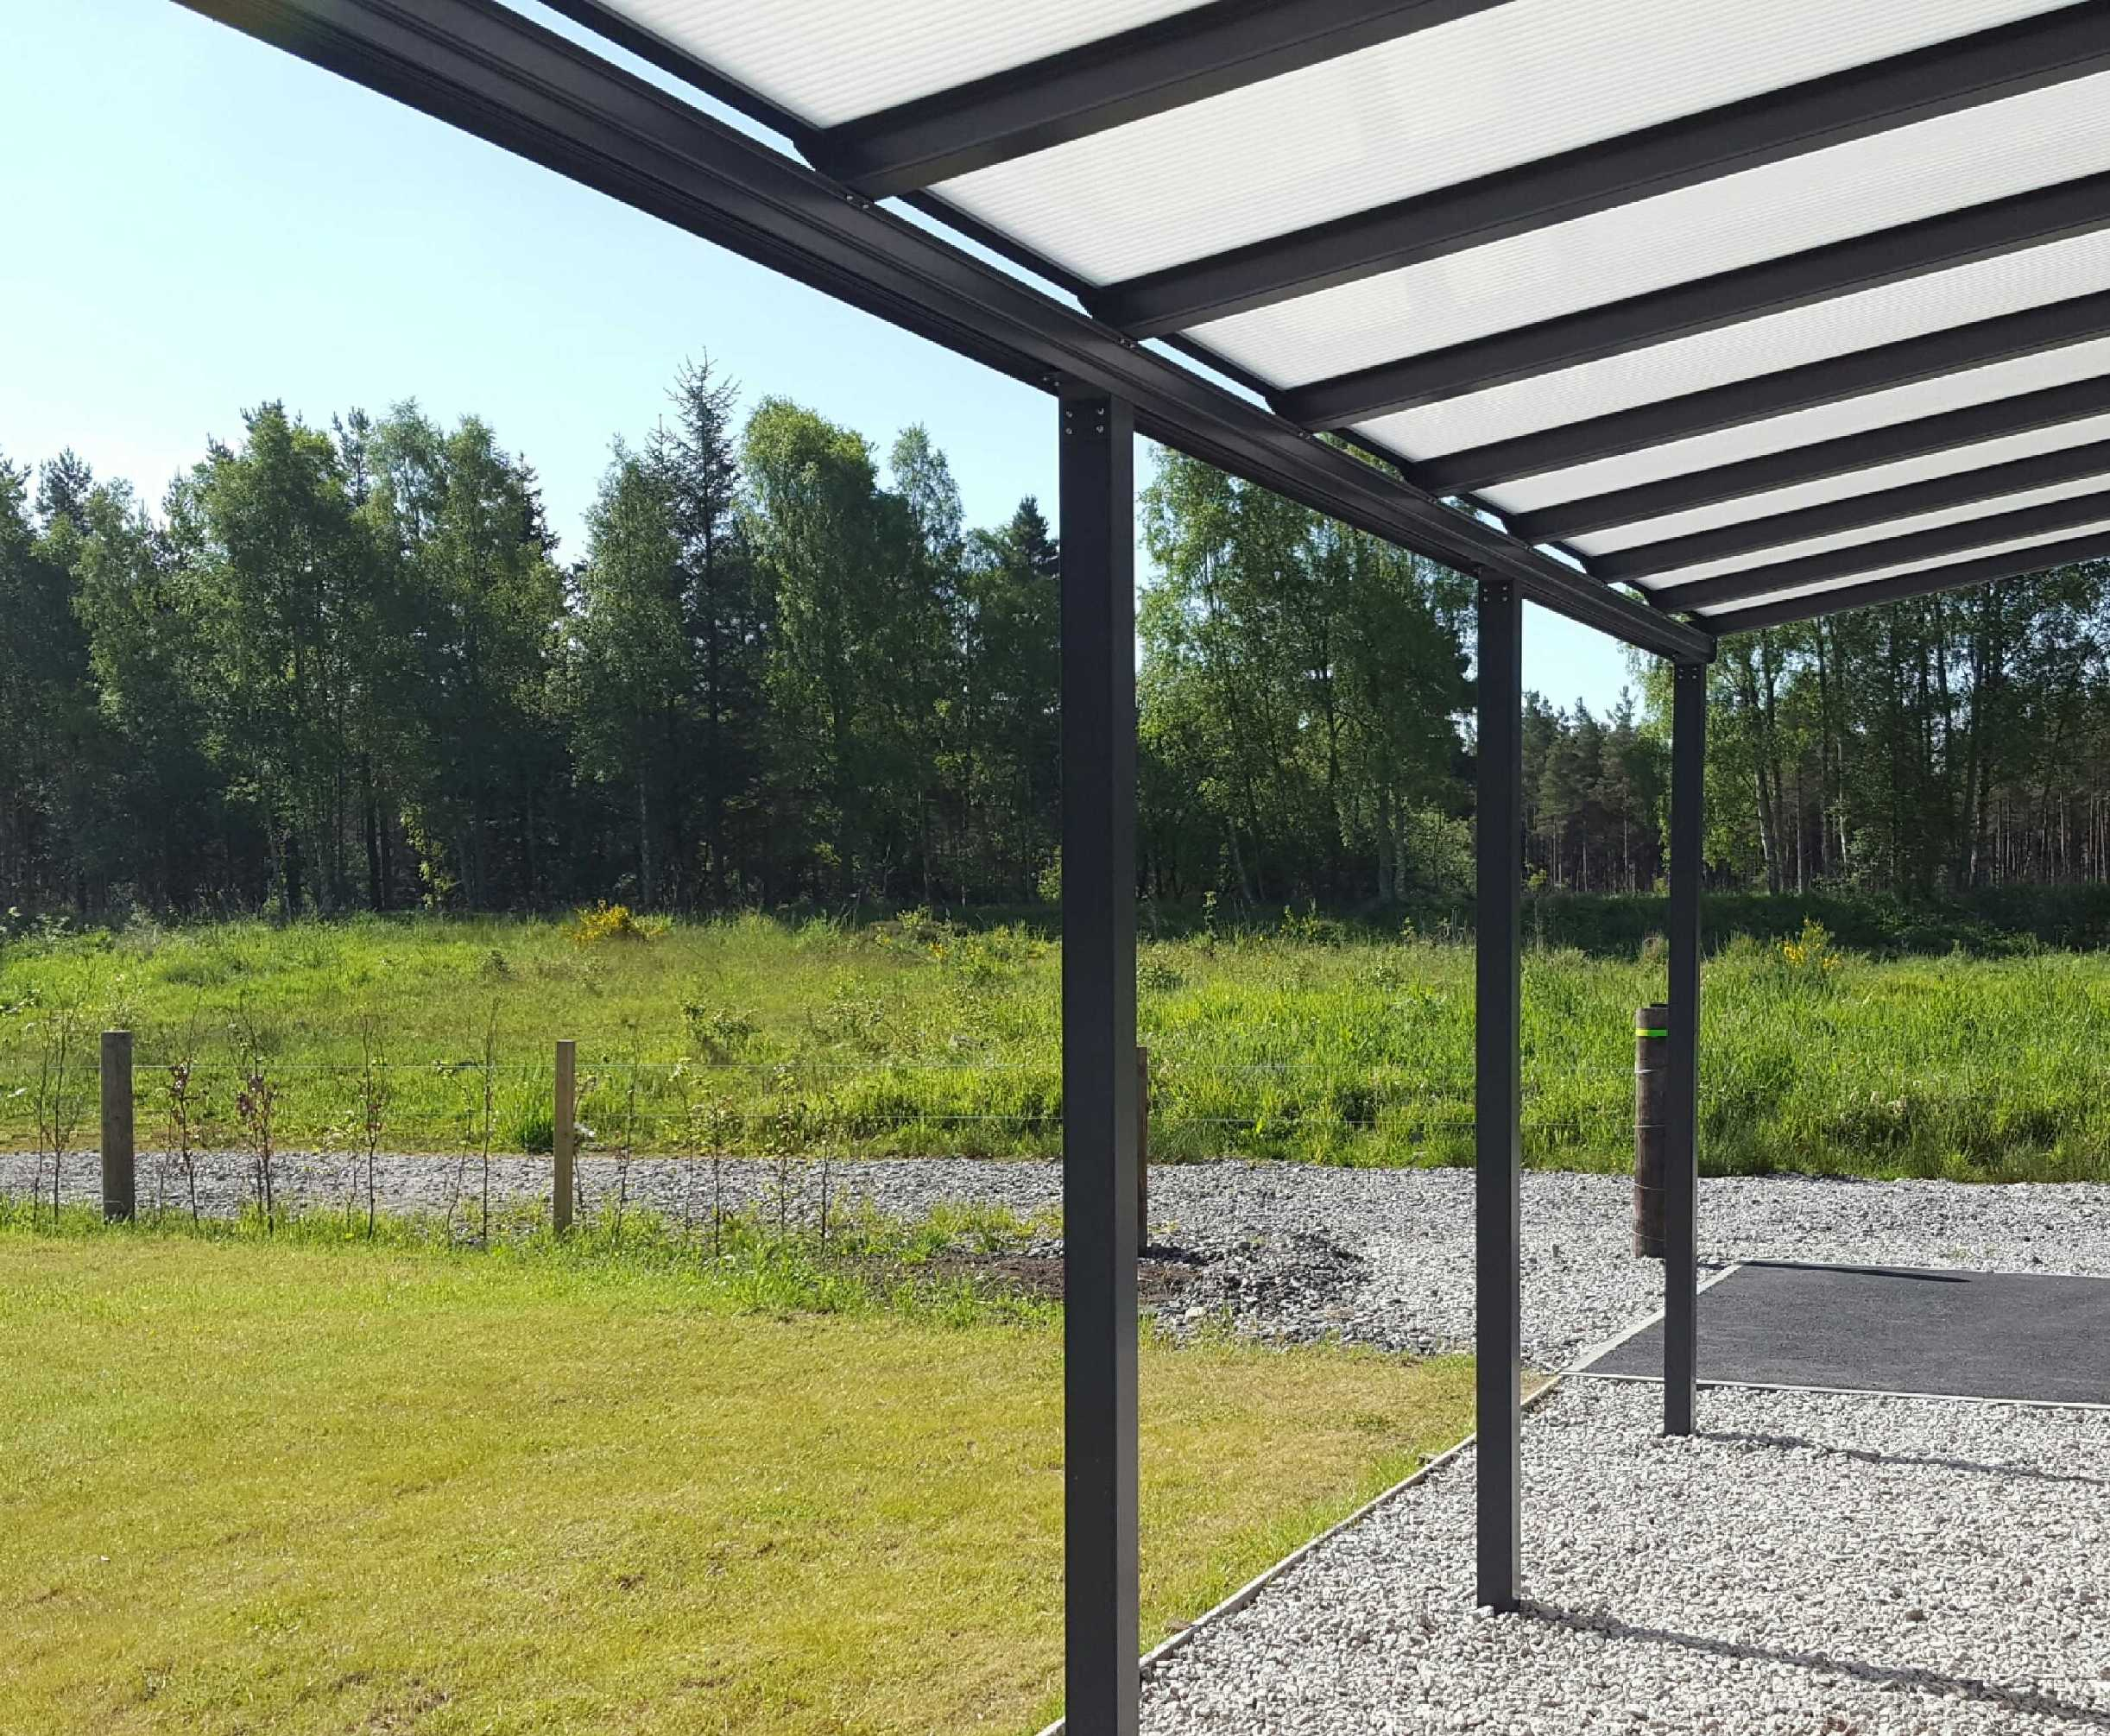 Omega Smart Lean-To Canopy, Anthracite Grey, 16mm Polycarbonate Glazing - 2.1m (W) x 1.5m (P), (2) Supporting Posts